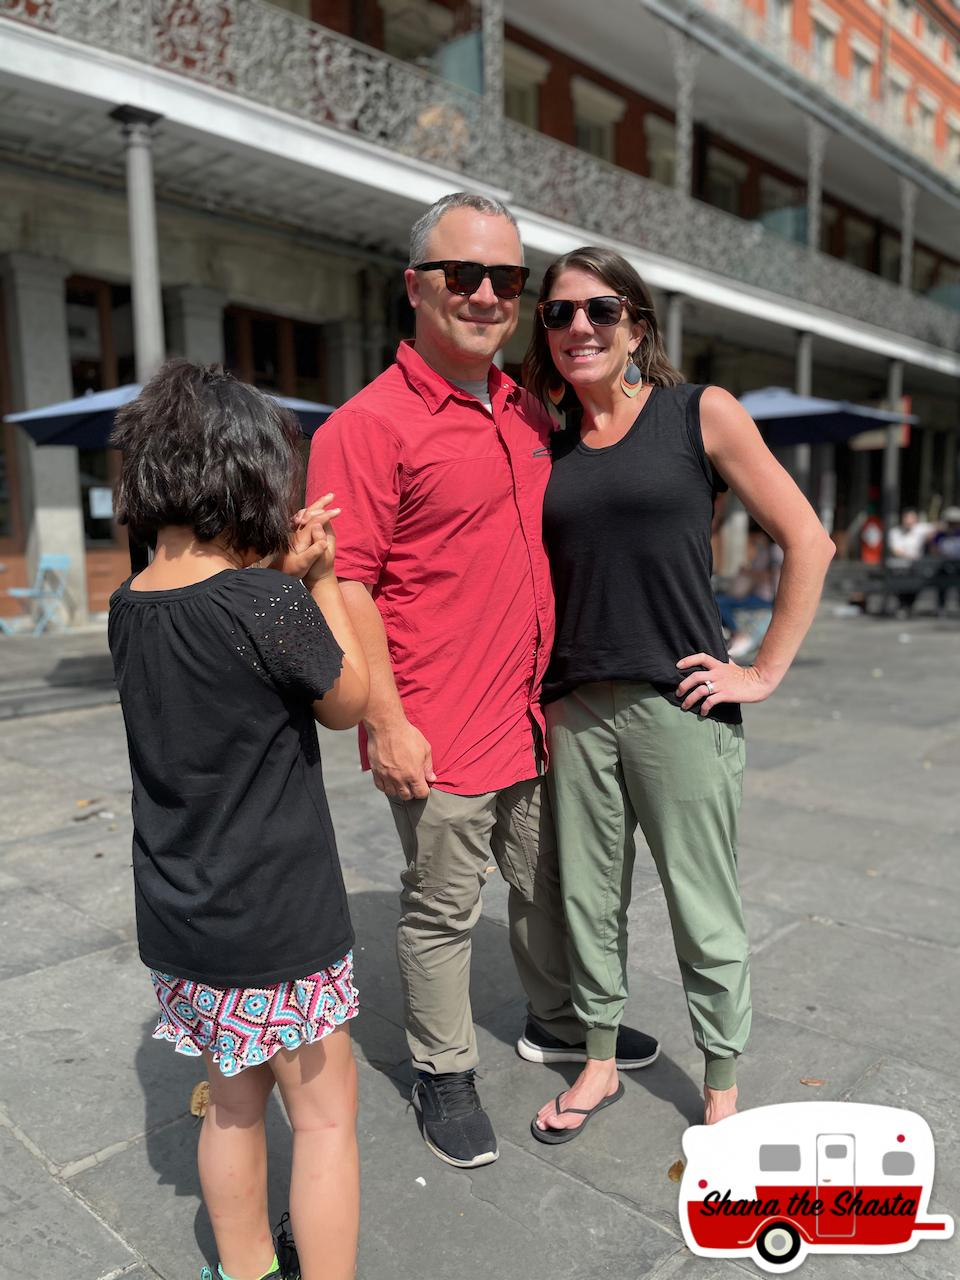 Couple-in-love-at-square-in-New-Orleans